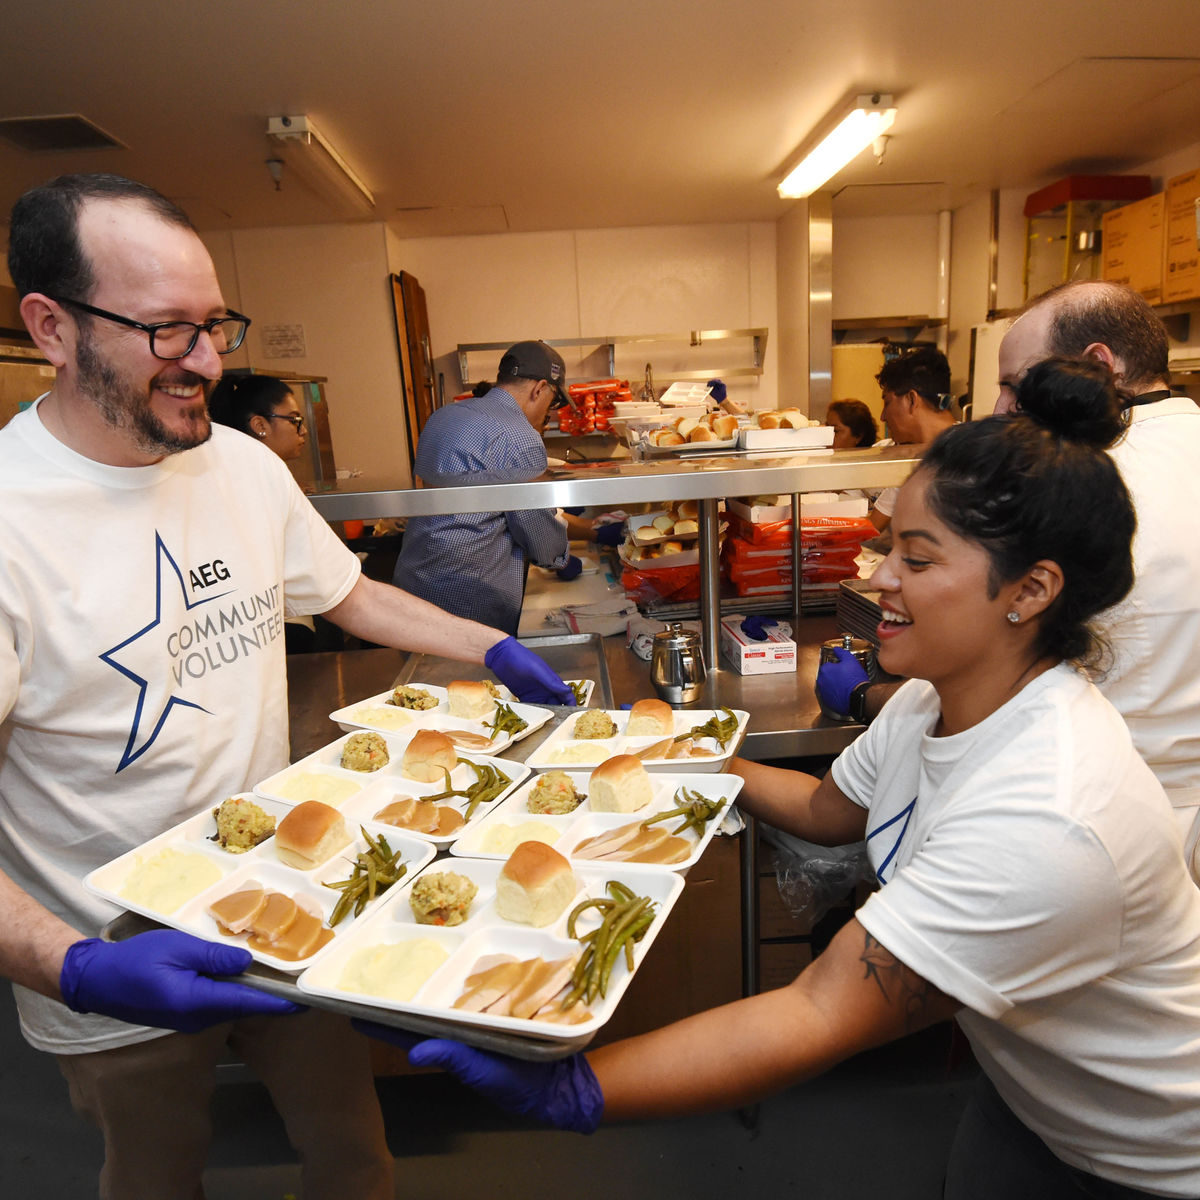 AEG CEO & President Dan Beckerman hands a tray of prepared Thanksgiving meals to another volunteer in the kitchen at The Novo at L.A. LIVE.